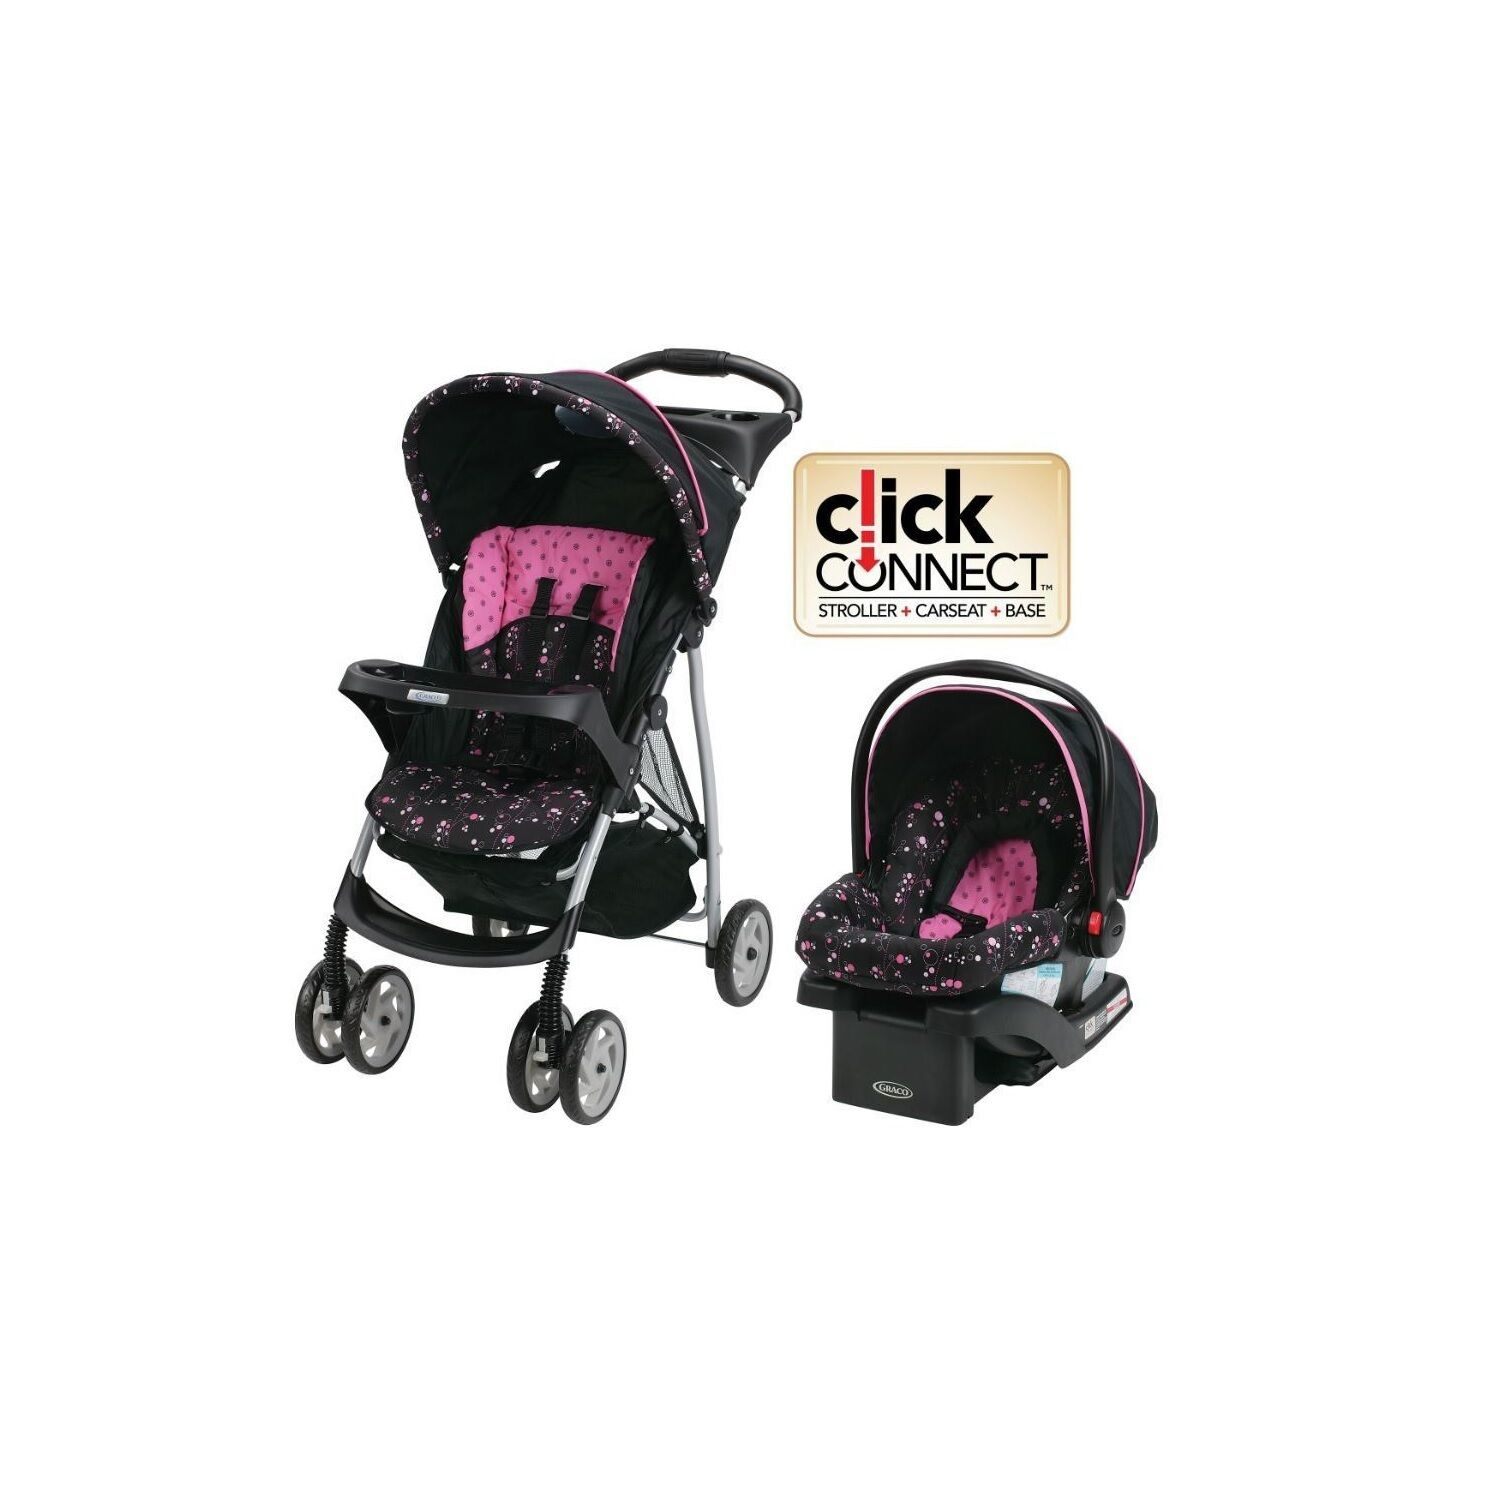 graco baby stroller car seat travel system infant toddler carriage pink picclick. Black Bedroom Furniture Sets. Home Design Ideas